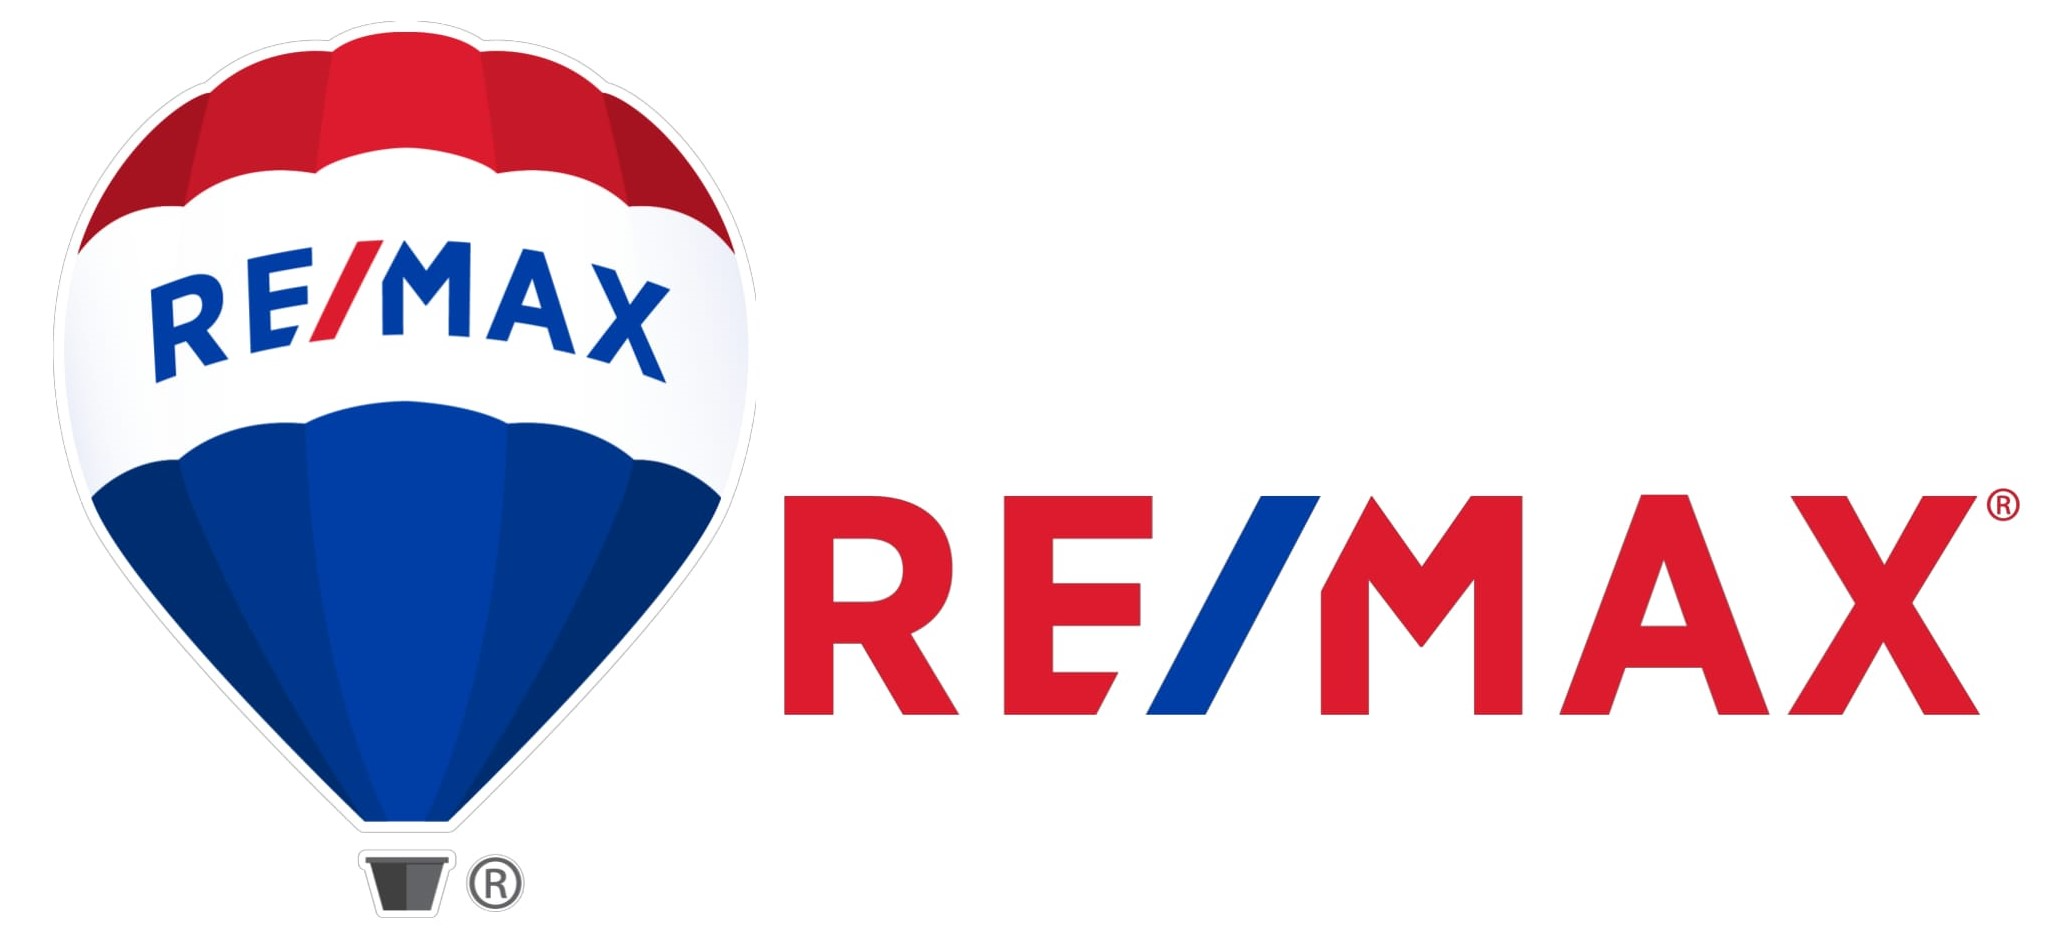 remax-new-logo.png